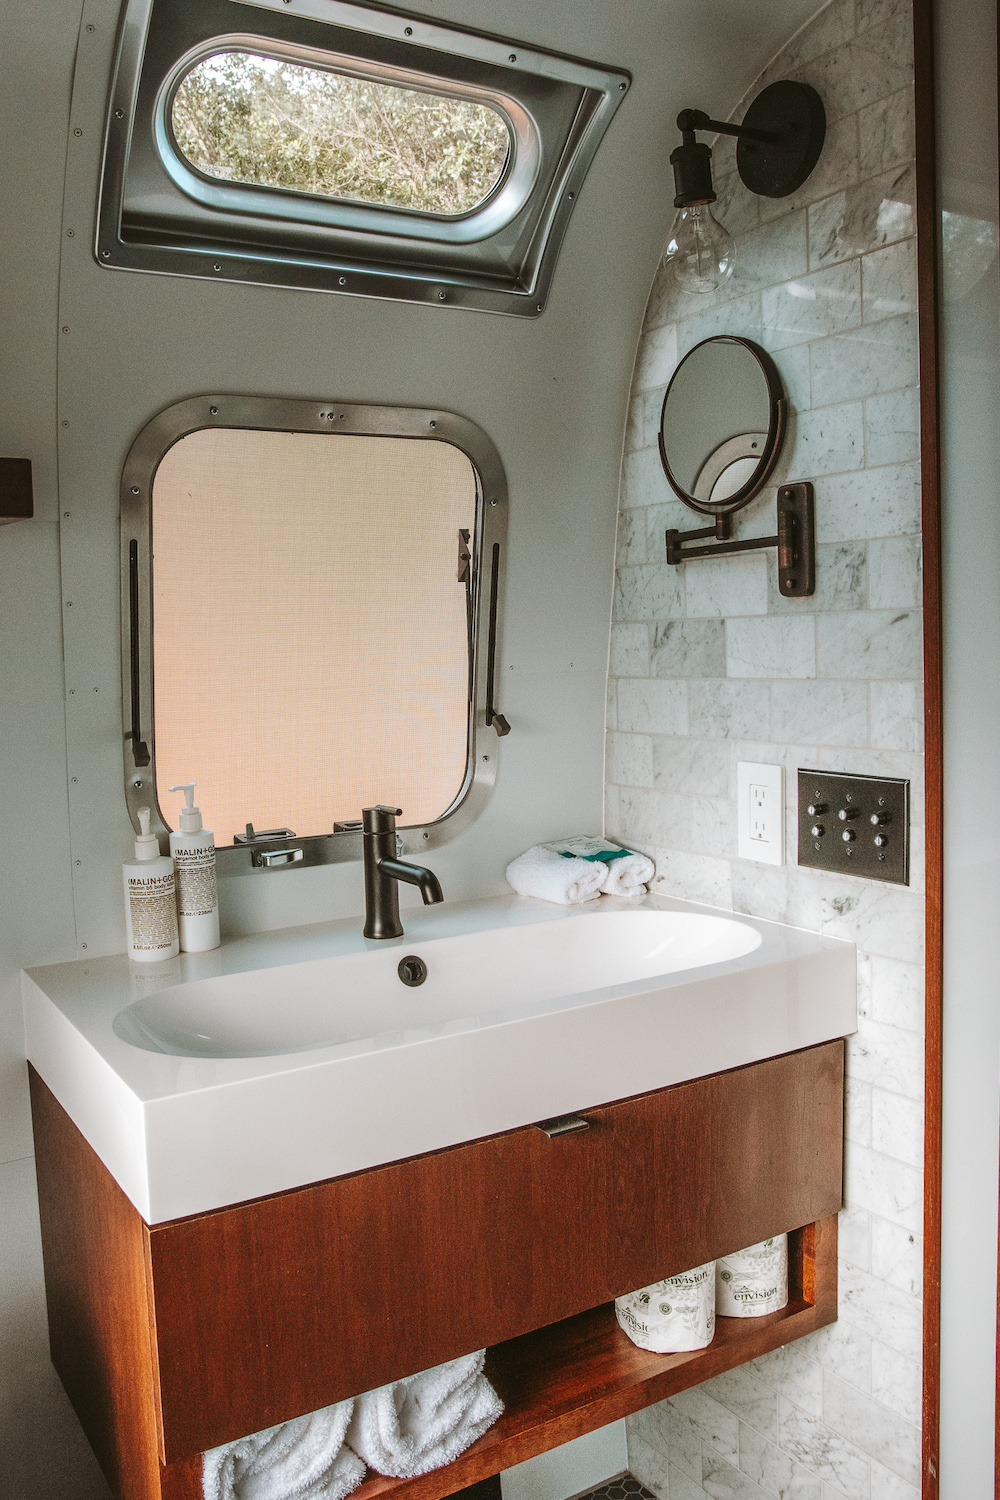 Autocamp Yosemite Airstream Bathroom | Cedar + Surf